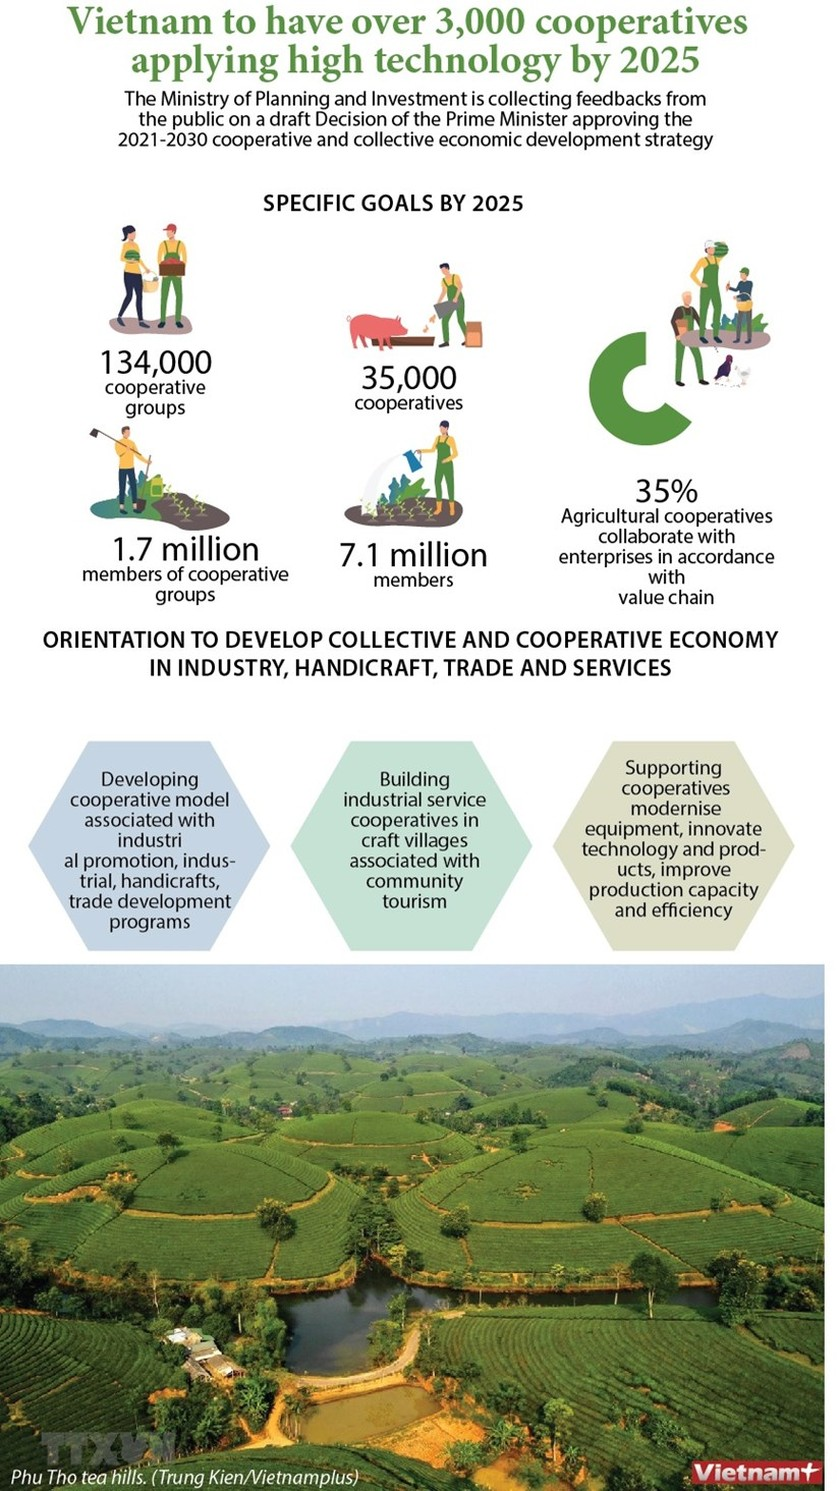 Vietnam to have over 3,000 cooperatives applying high technology by 2025 ảnh 1